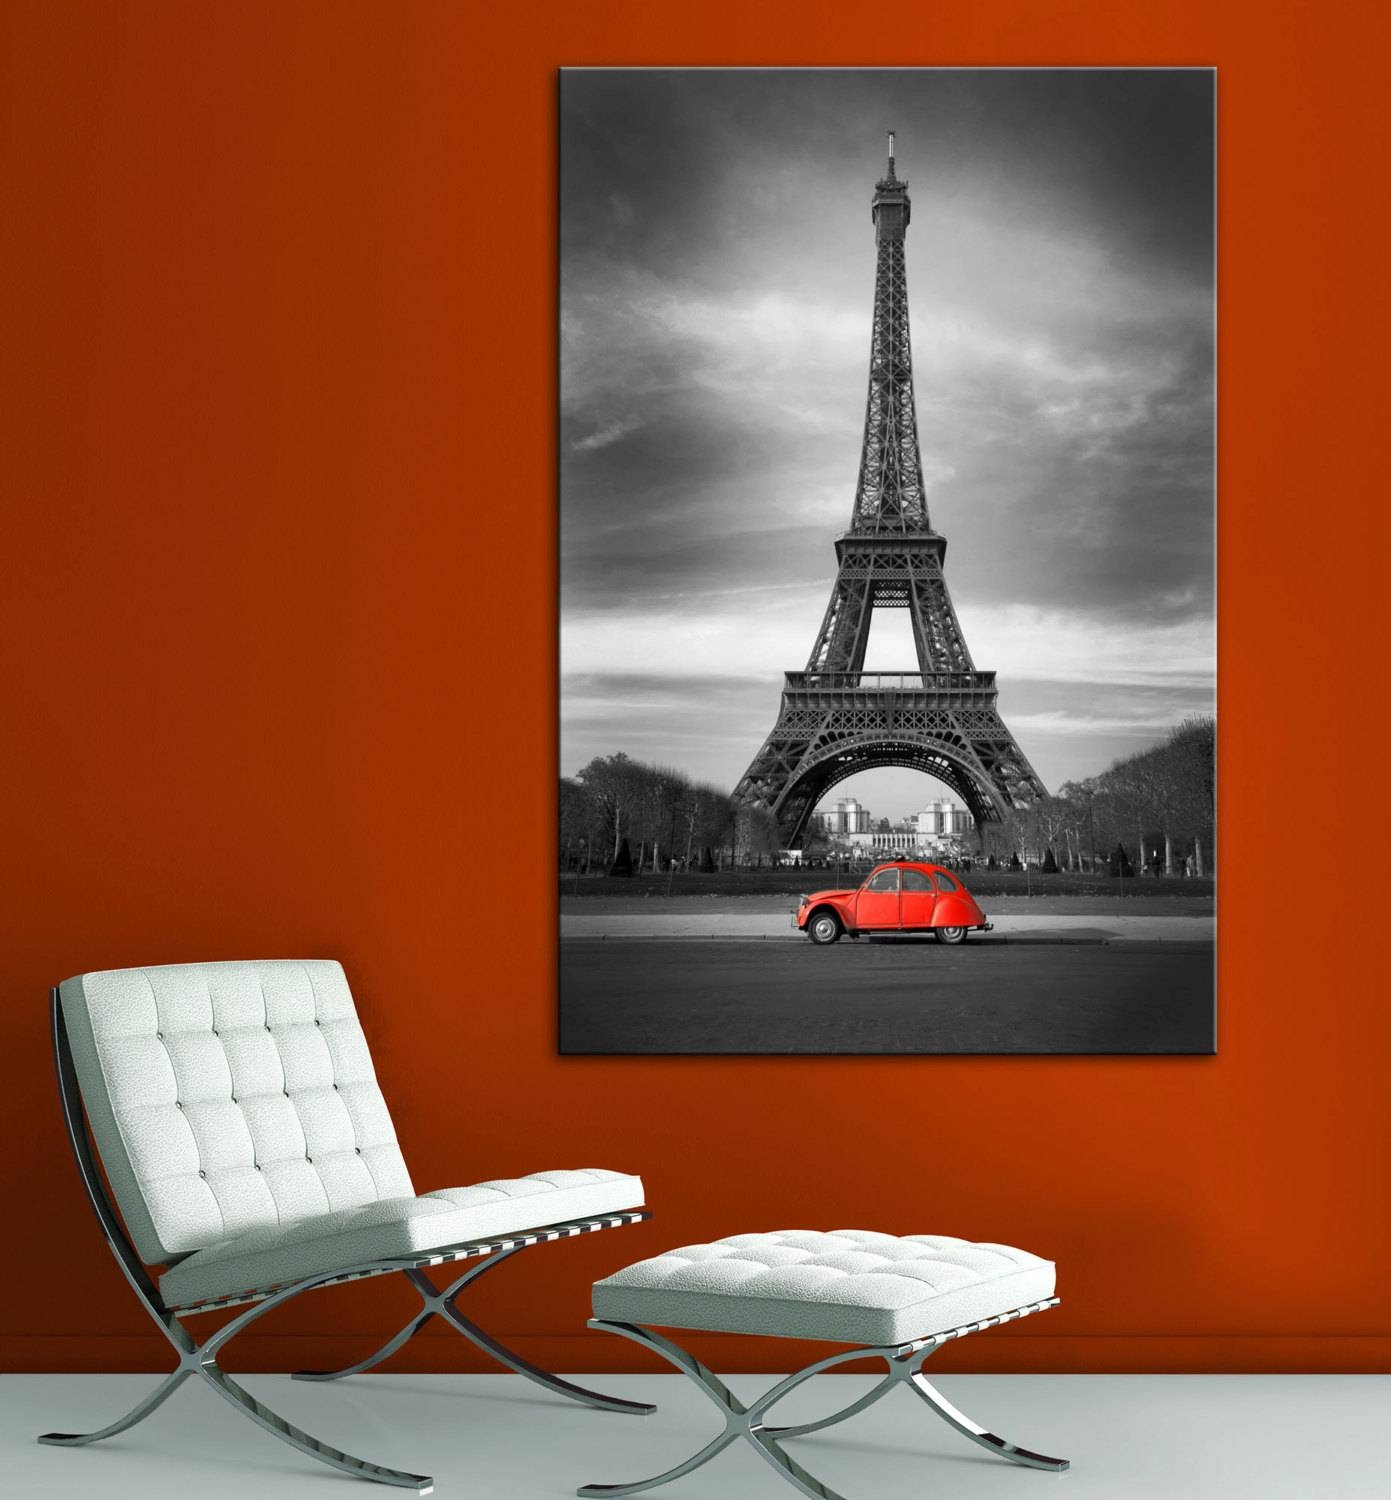 Eiffel Tower Red Car Paris Black White Wall Art Canvas Giclee Throughout Most Recent Black And White Paris Wall Art (View 14 of 25)